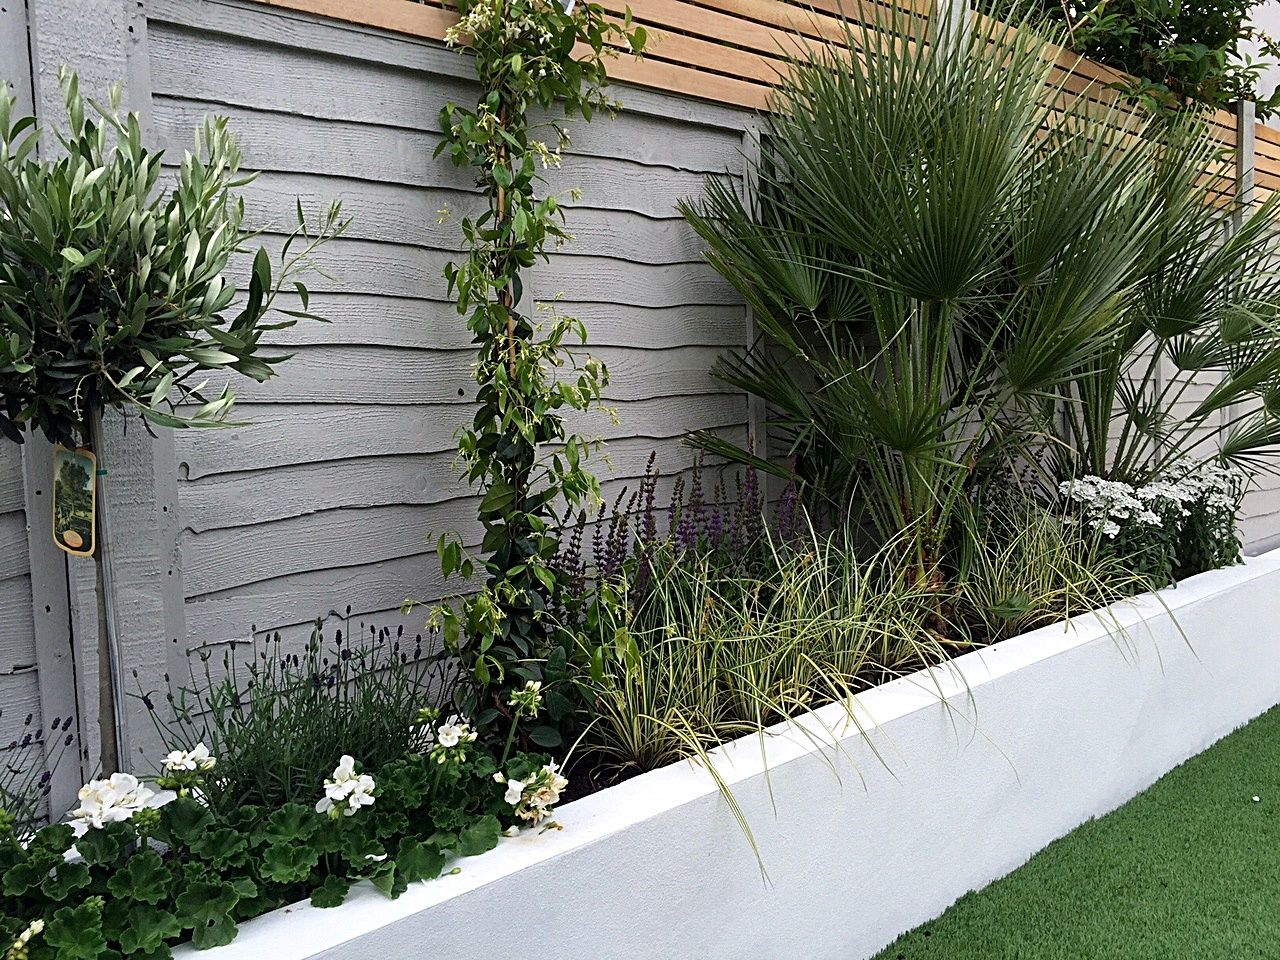 Render walls planting small garden design painted fence london anewgarden pinterest - Garden ideas london ...